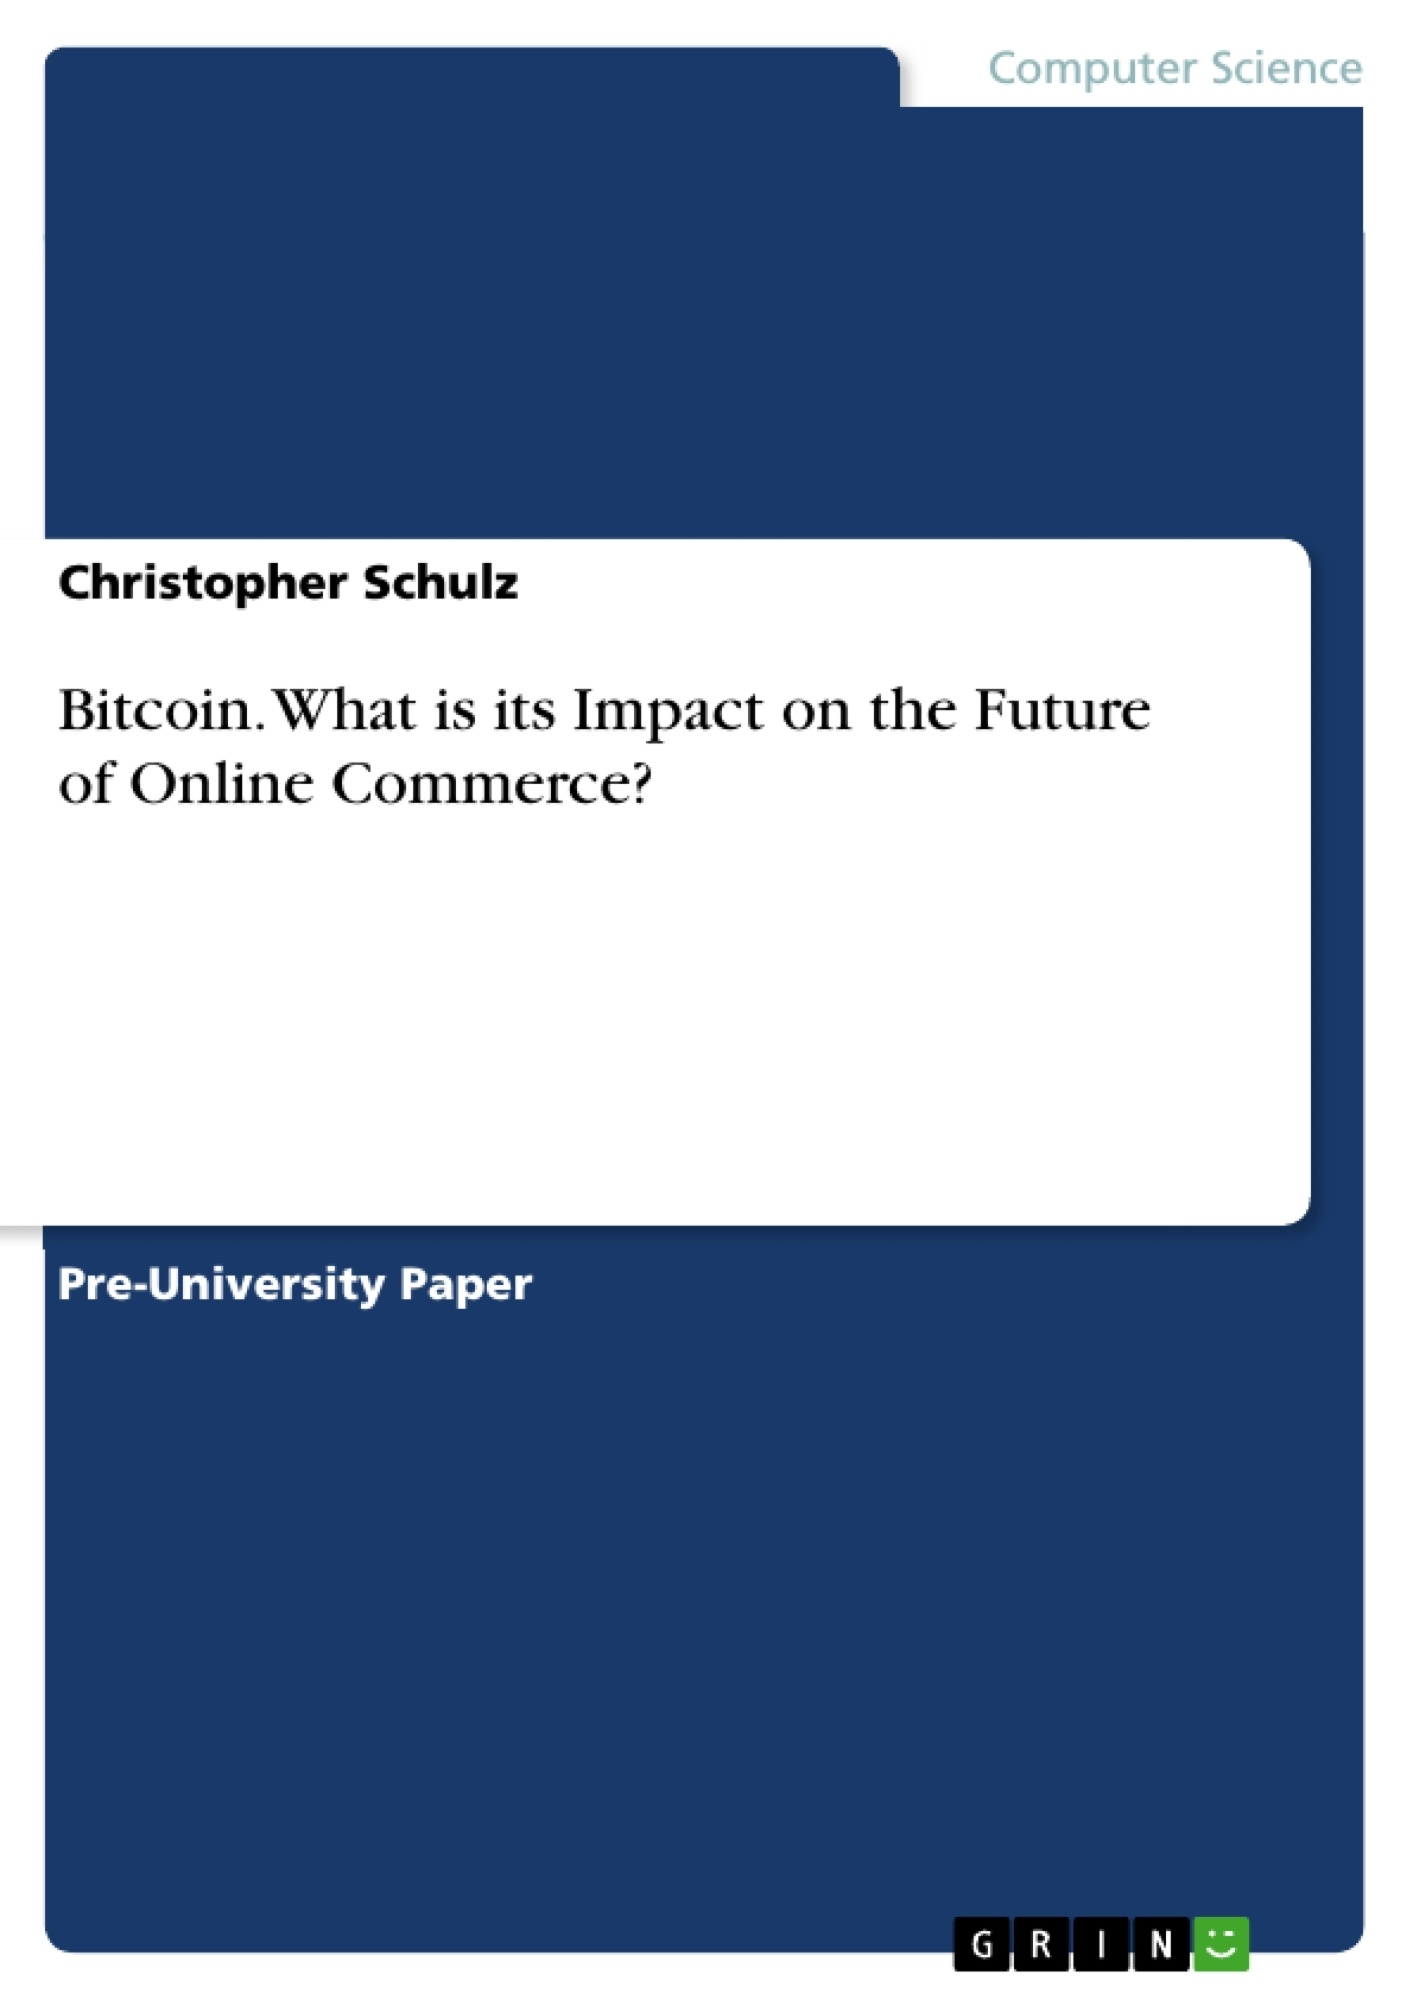 Title: Bitcoin. What is its Impact on the Future of Online Commerce?